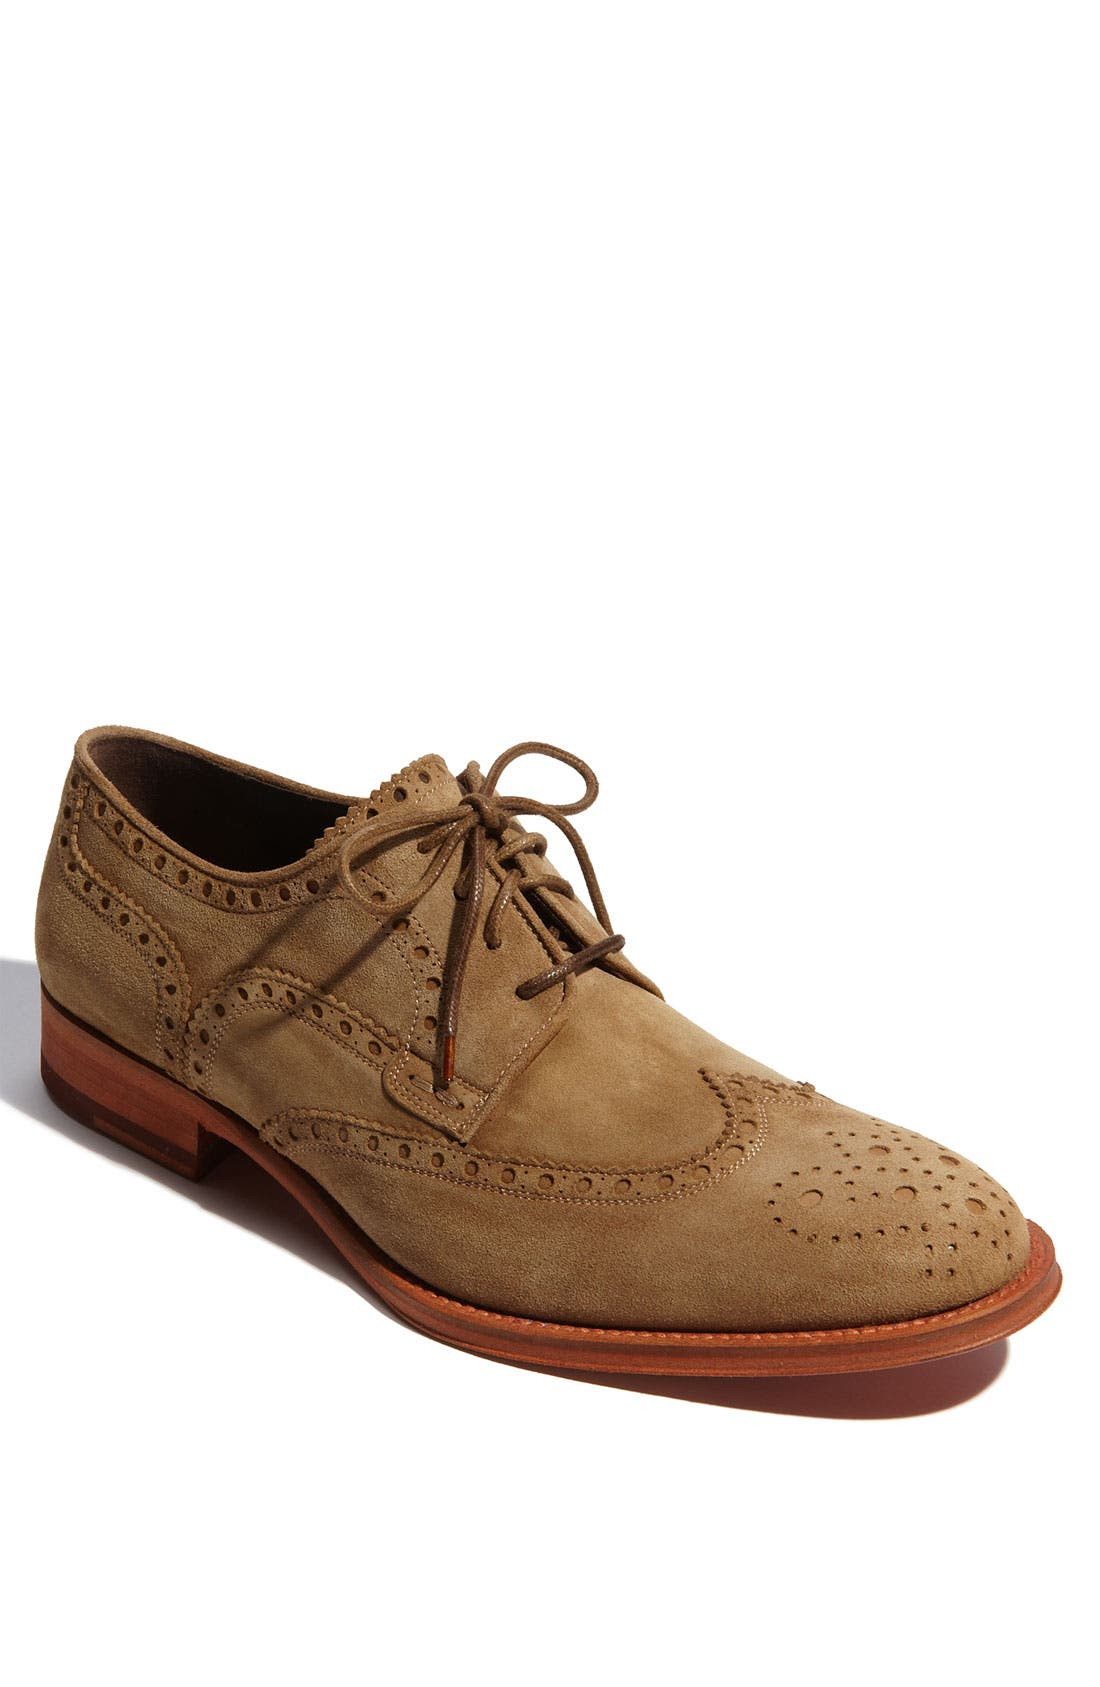 Alternate Image 1 Selected - Magnanni 'Antonio' Oxford